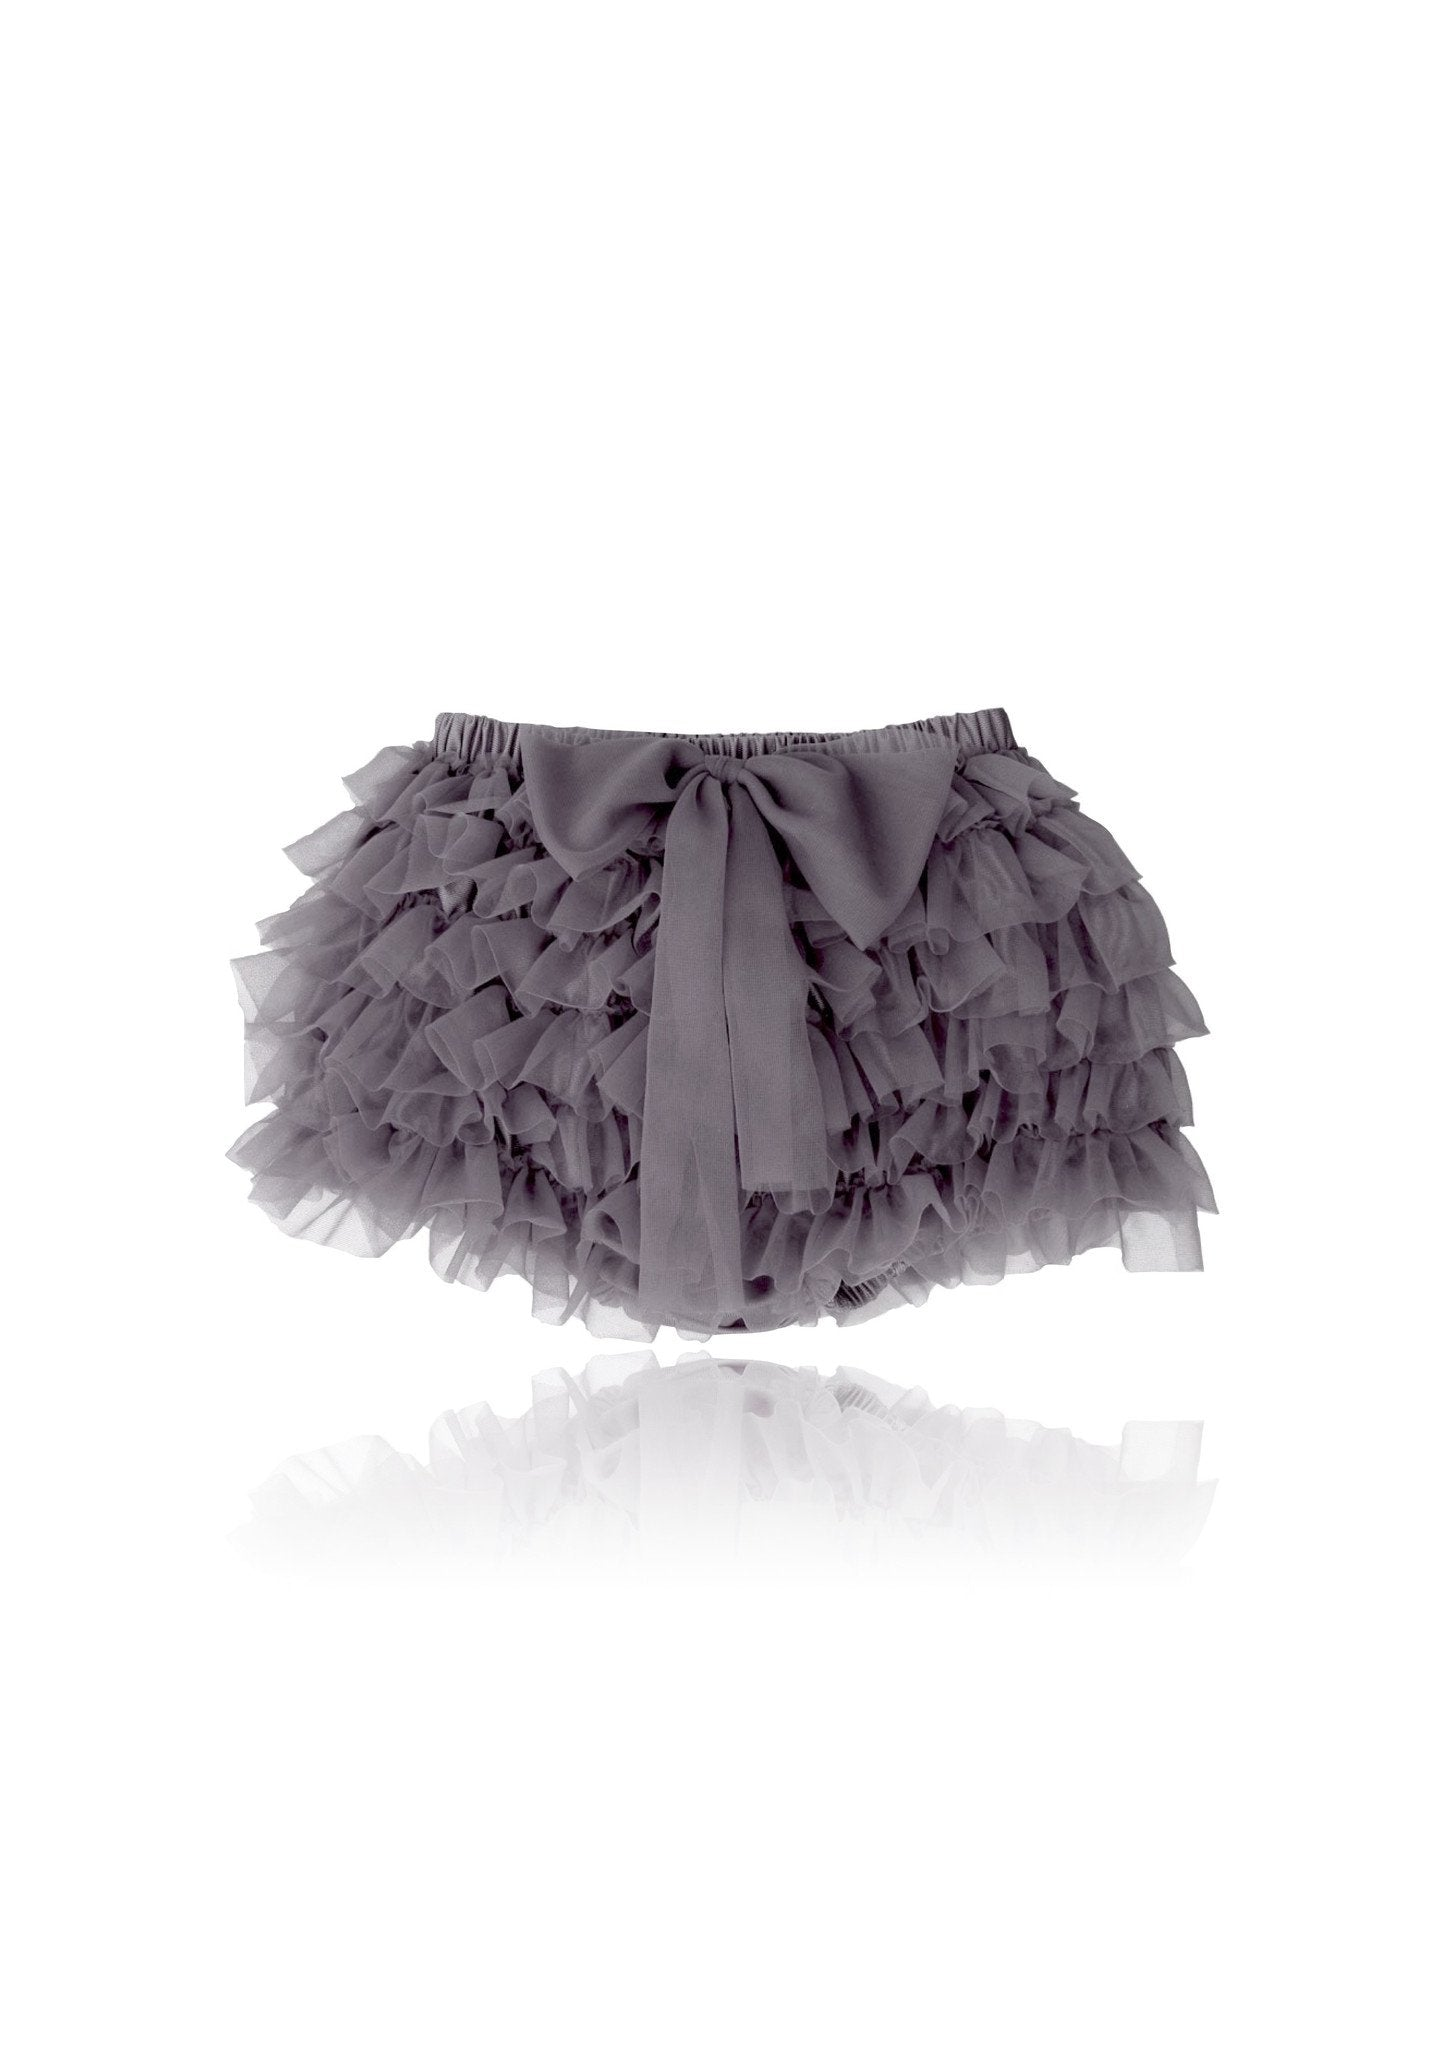 DOLLY by Le Petit Tom ® FRILLY PANTS dark grey - DOLLY by Le Petit Tom ®